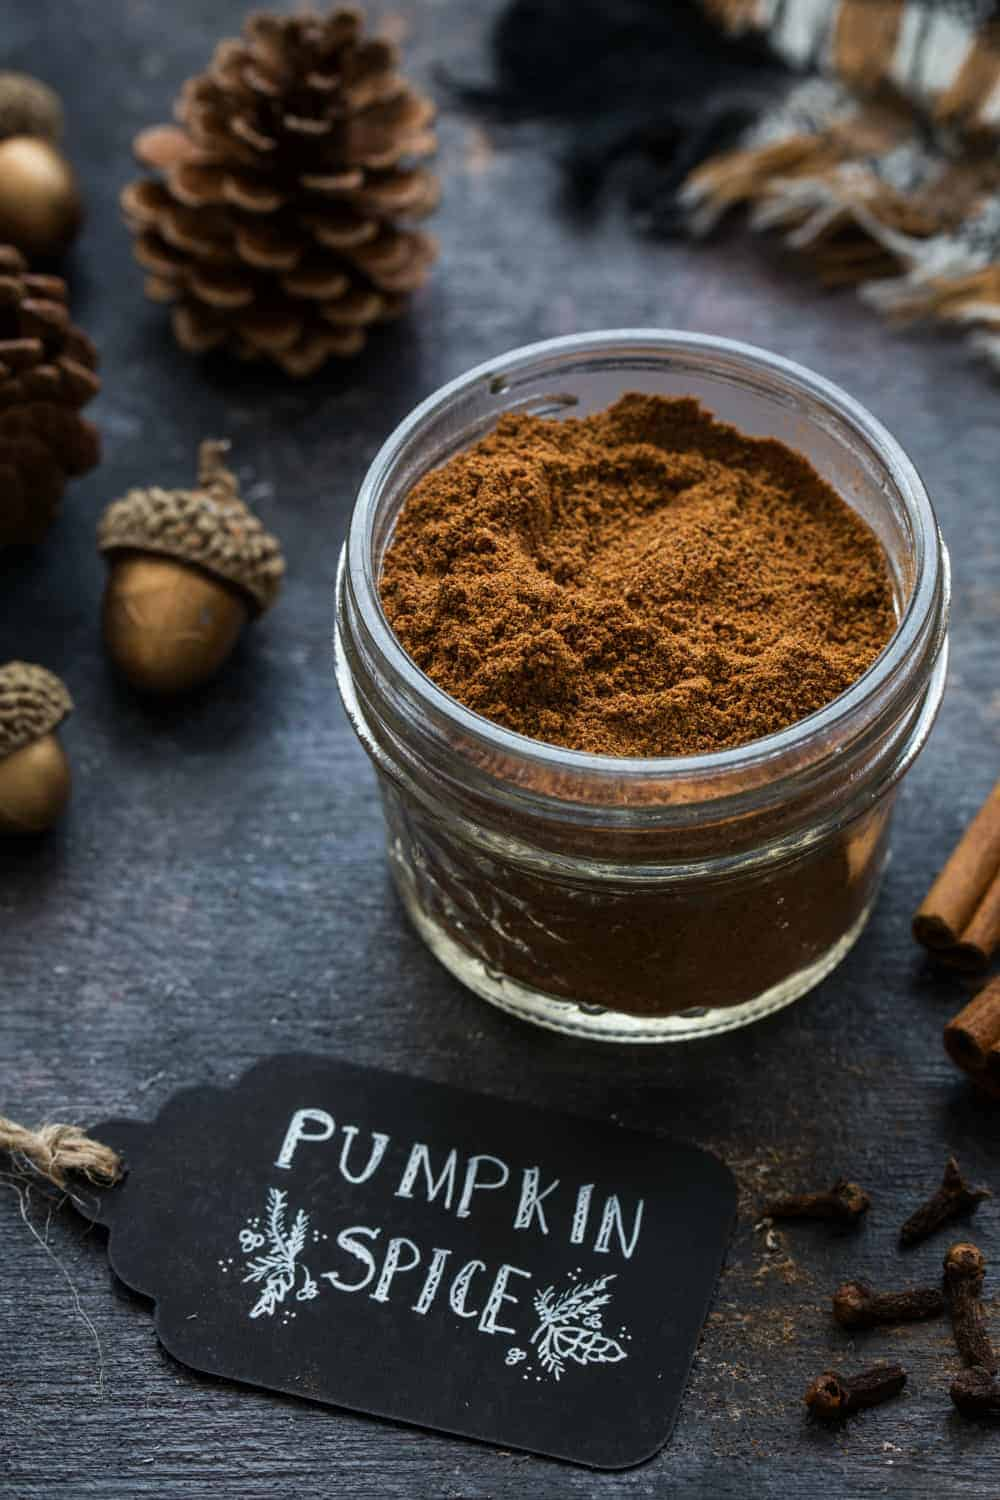 Pumpkin Pie Spice couldn't be easier to make at home. You'll love the warm and cozy flavor it adds to all of your holiday baking recipes.